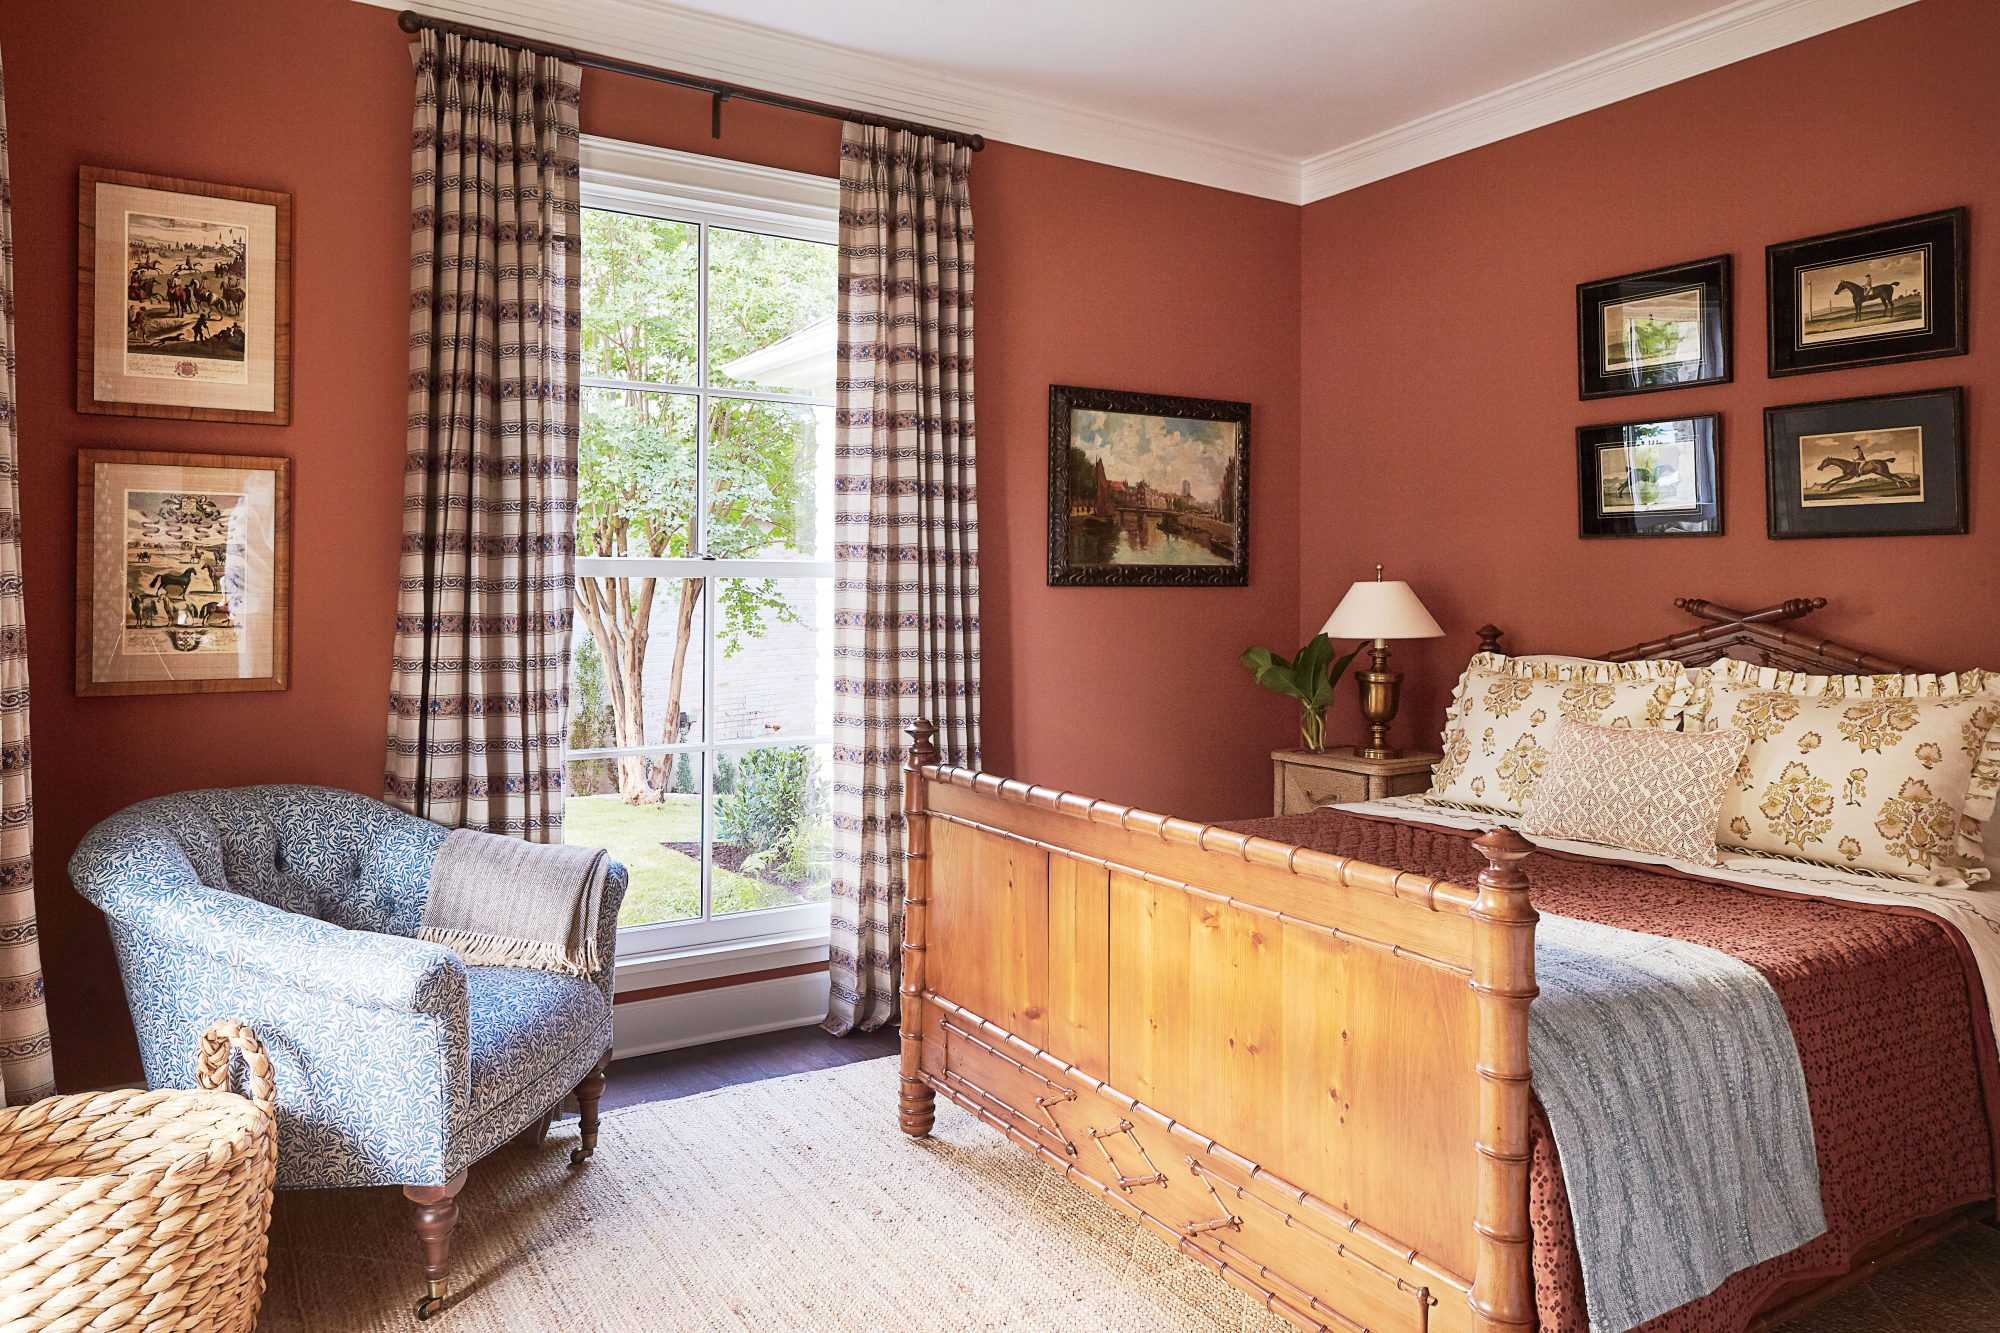 Sherwin Williams Color of the Year 2019 - Southern Living